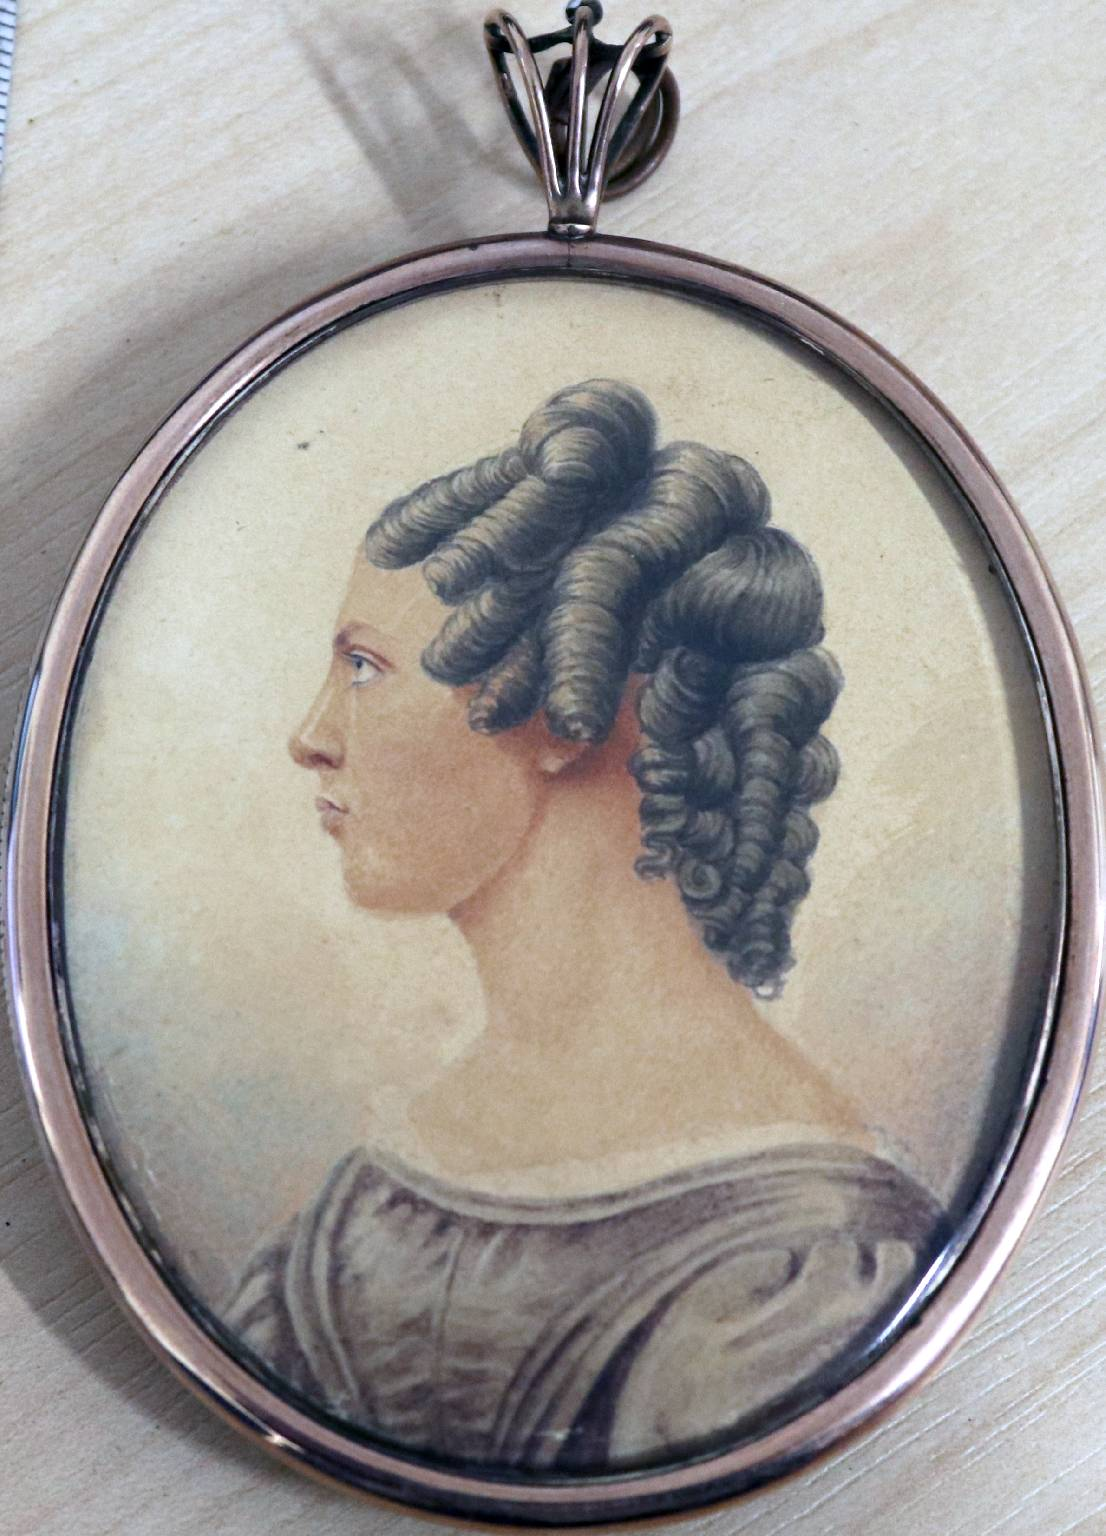 Portraits and archive relating to the Fanshawe family